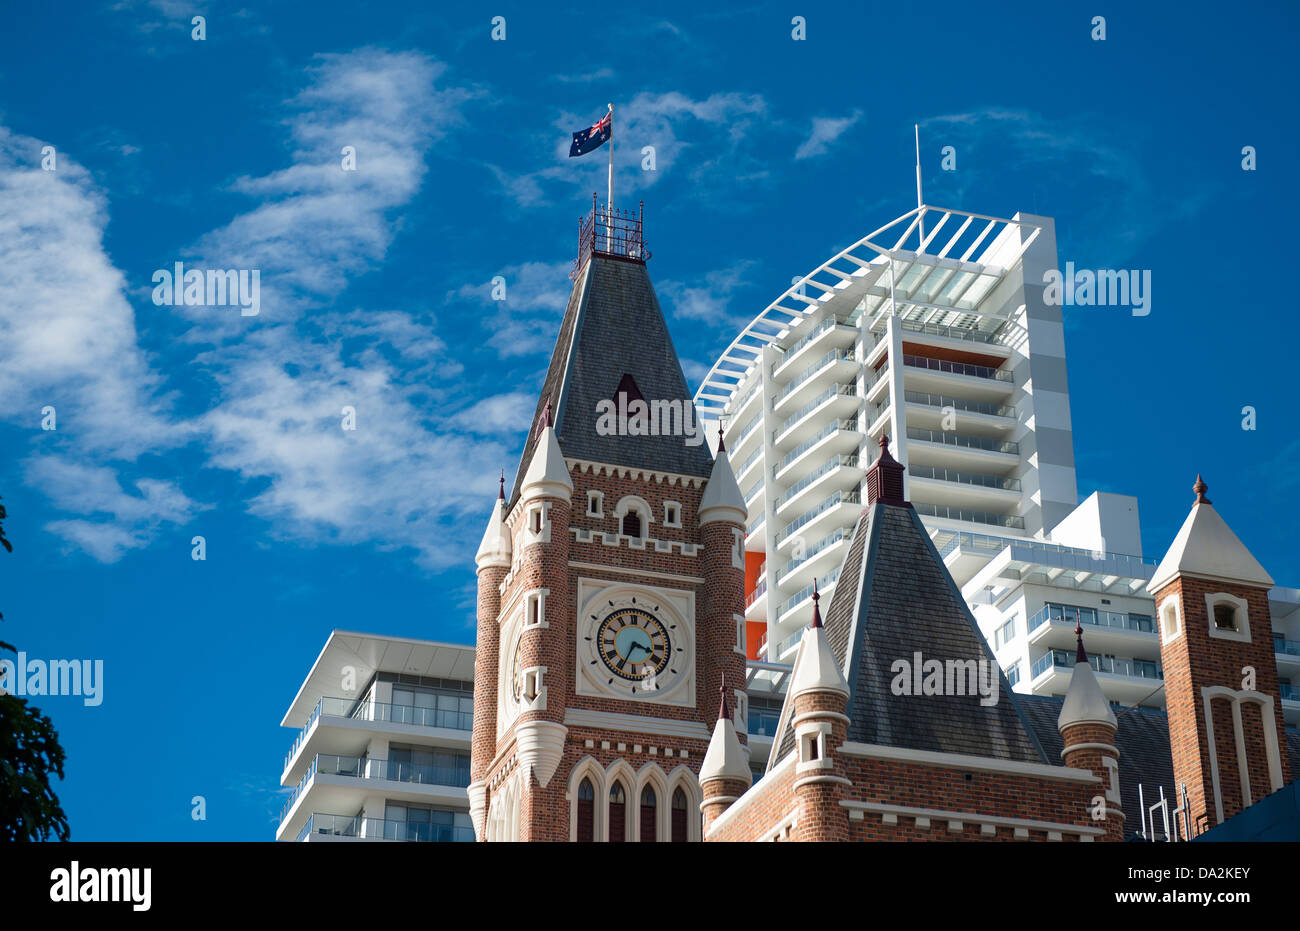 The tower of convict-built town hall at Hay Street against the facade of a modern skyscraper at Perth, Western Australia - Stock Image